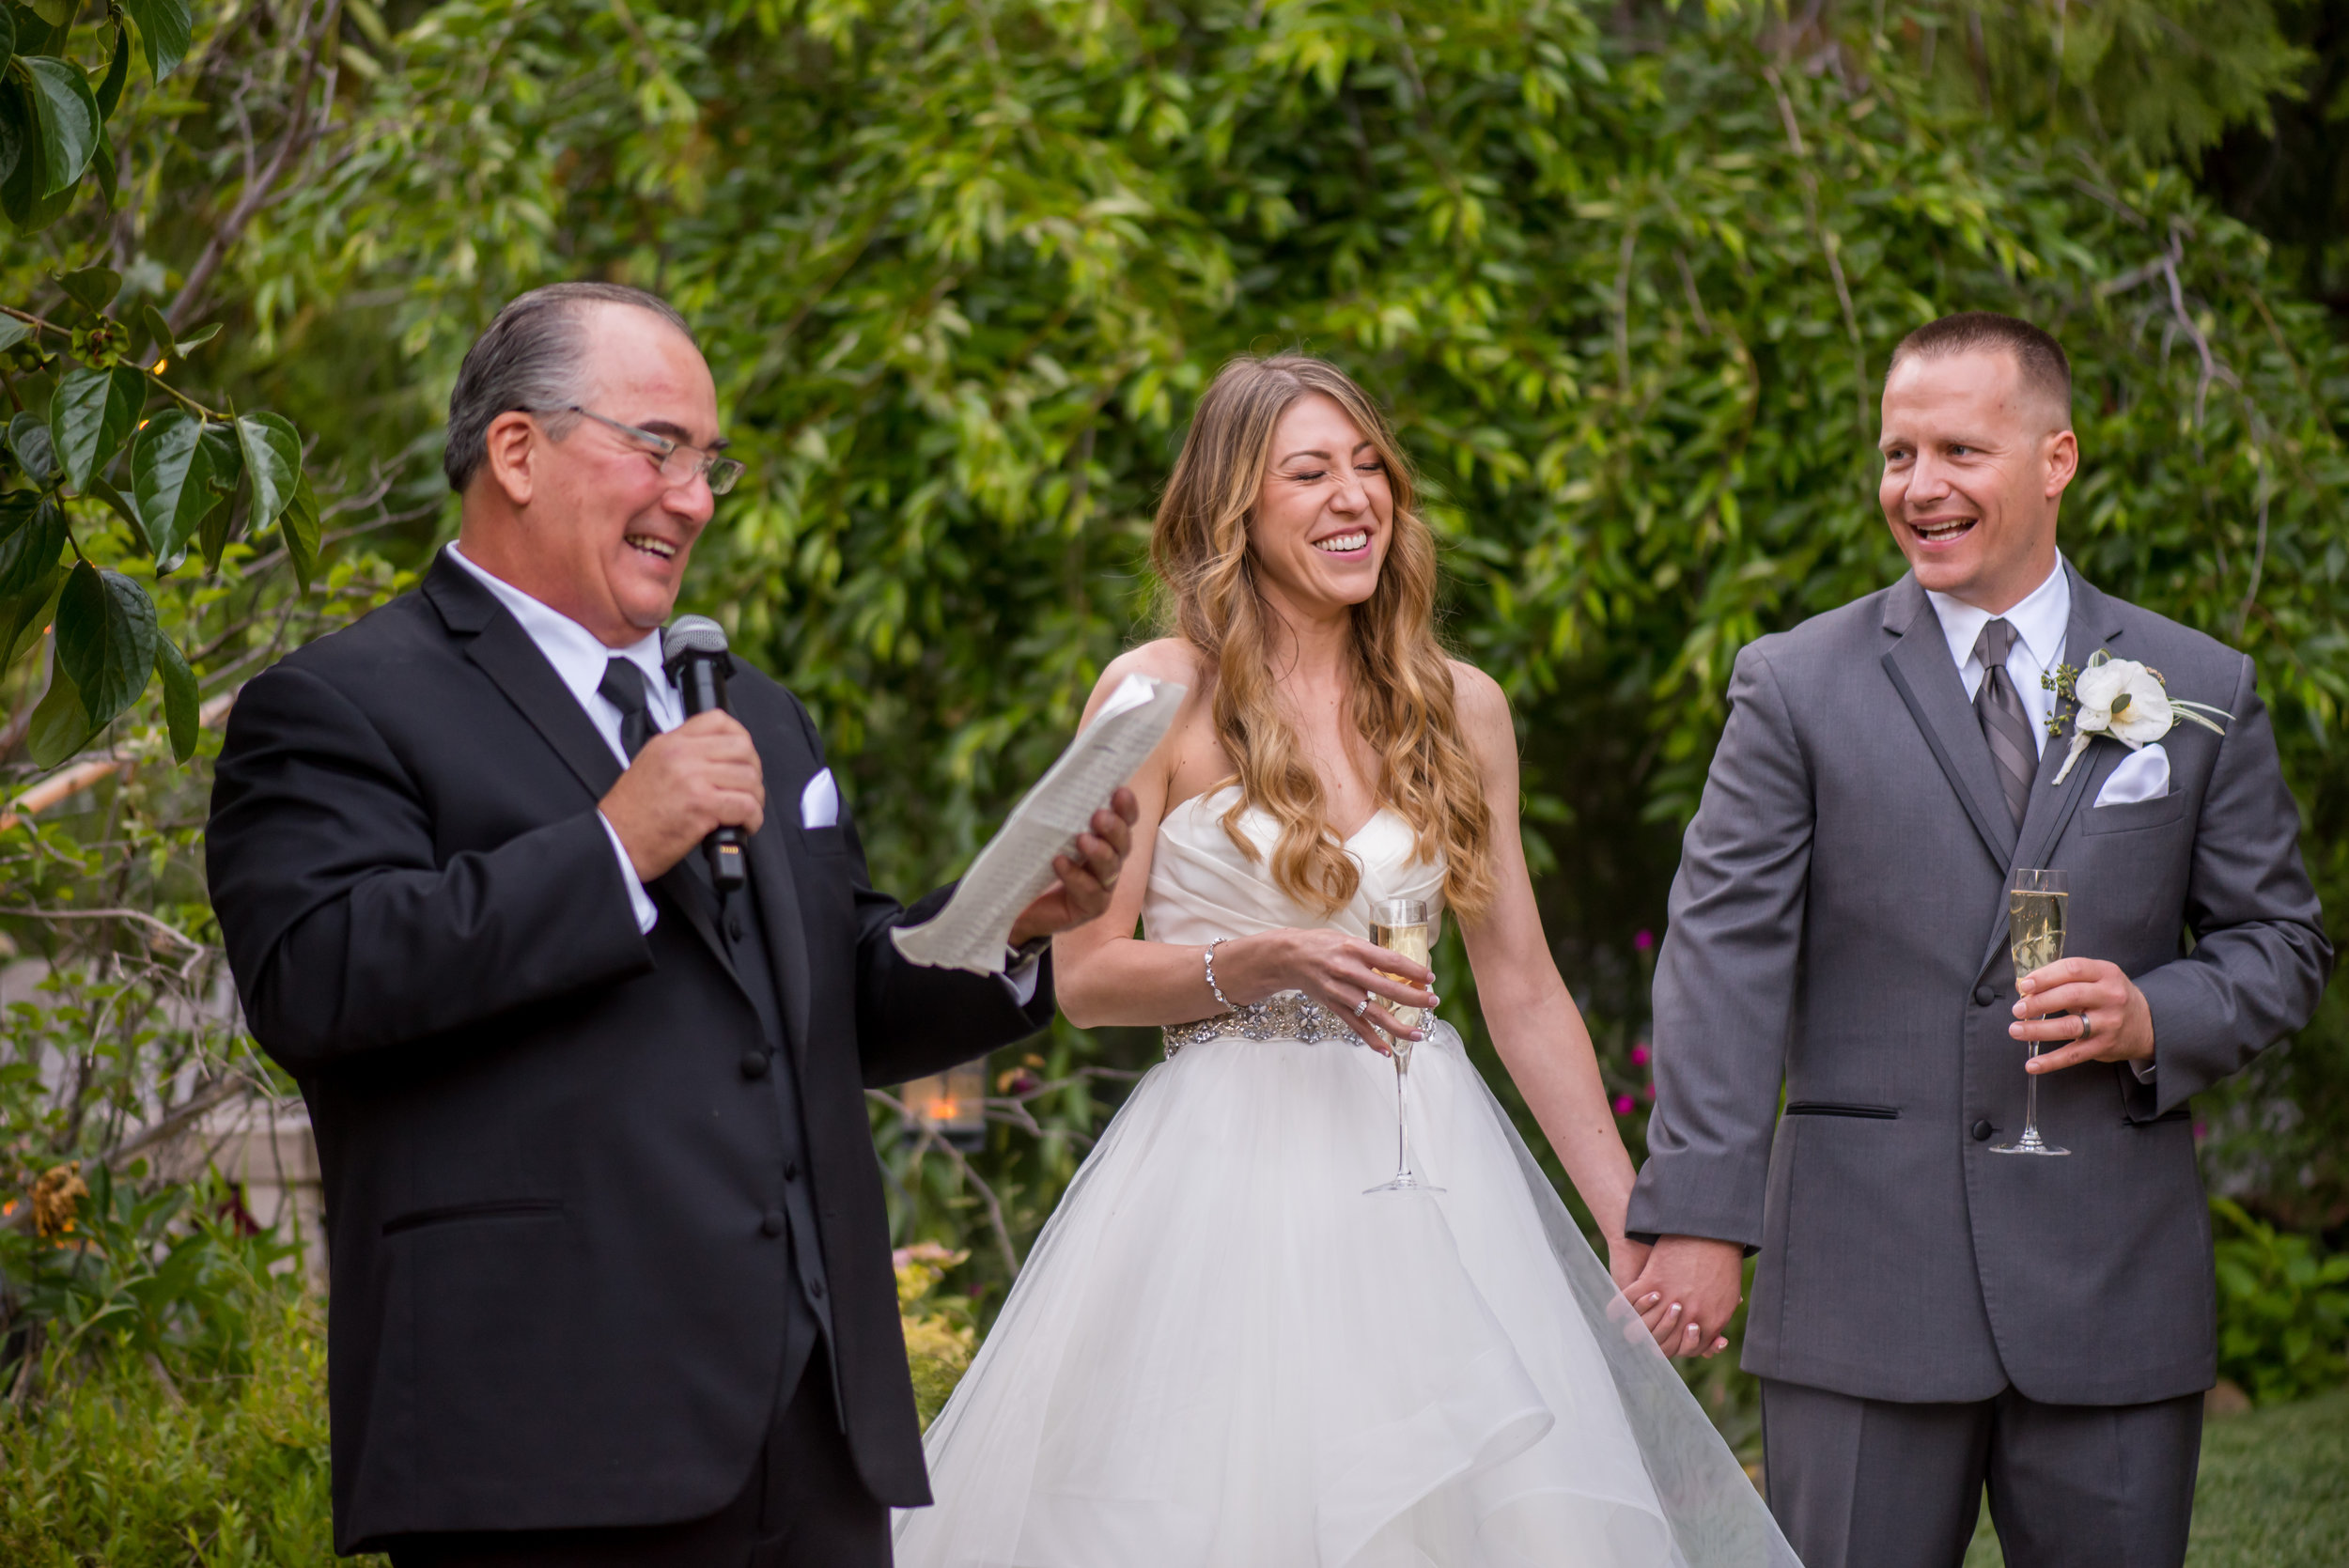 Father of the Bride toast during wedding at the Monte Verde Inn in Foresthill California.